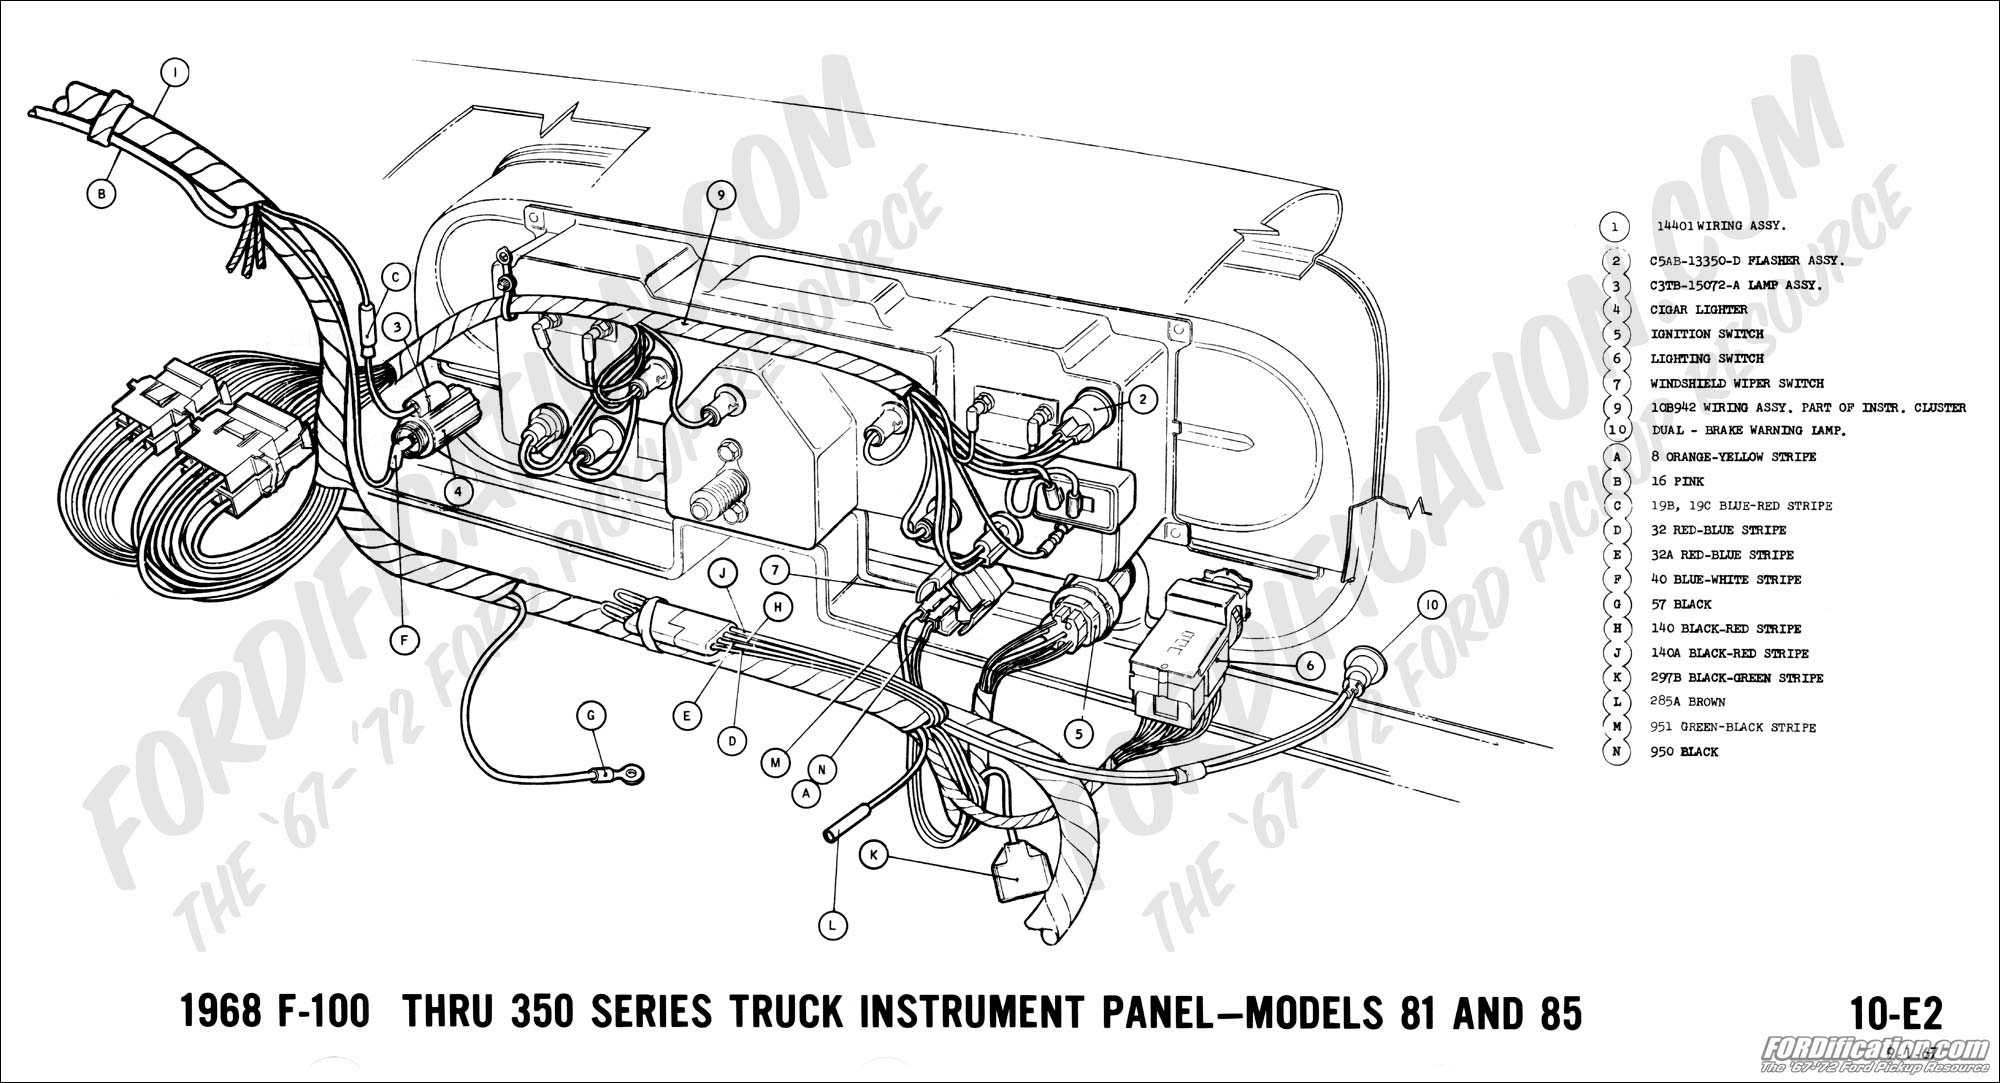 [WRG-4669] 1969 Cougar Turn Signal Wiring Diagram